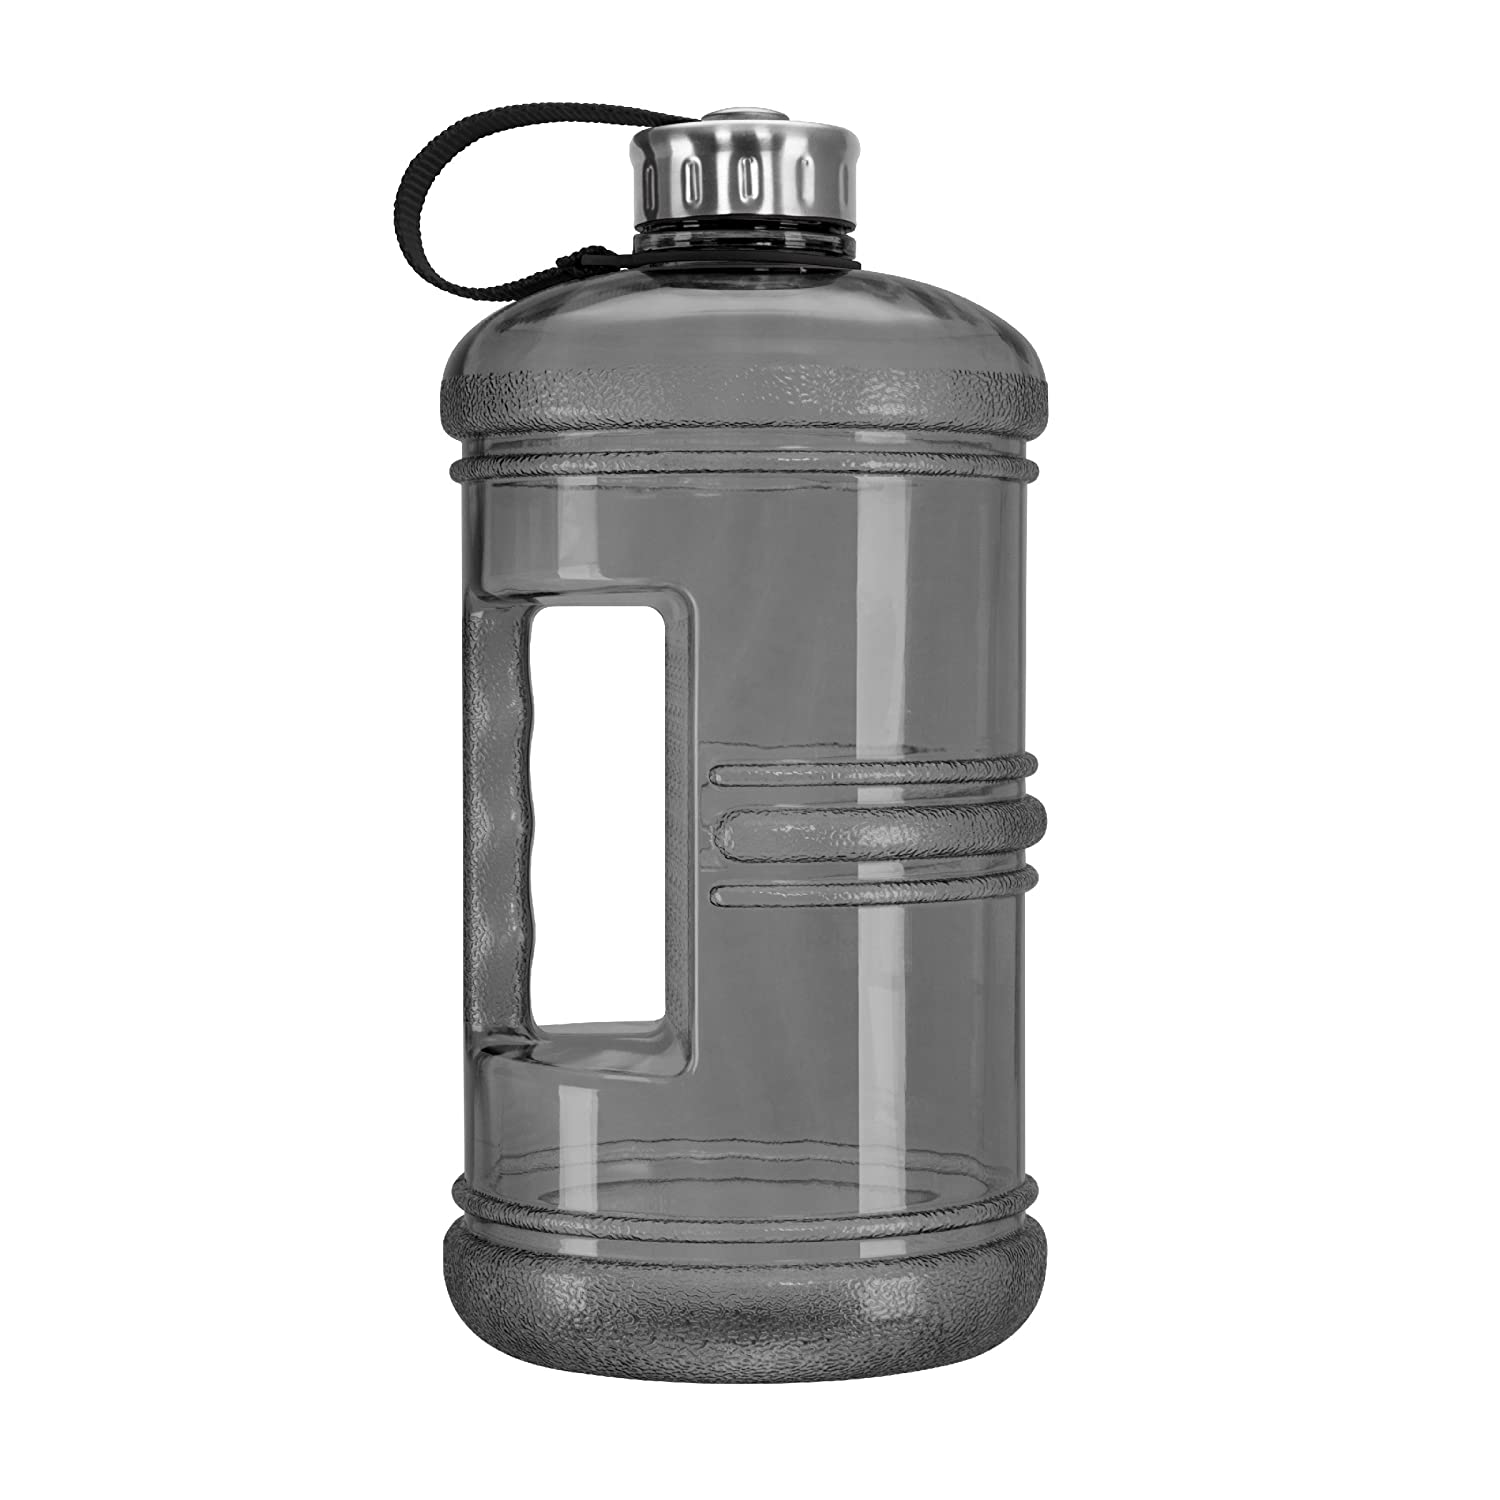 5266abf4a8 Amazon.com   Geo Sports Bottles 3 Liter BPA Free Reusable Plastic Drinking  Water Bottle w Stainless Steel Cap (Black)   Sports   Outdoors